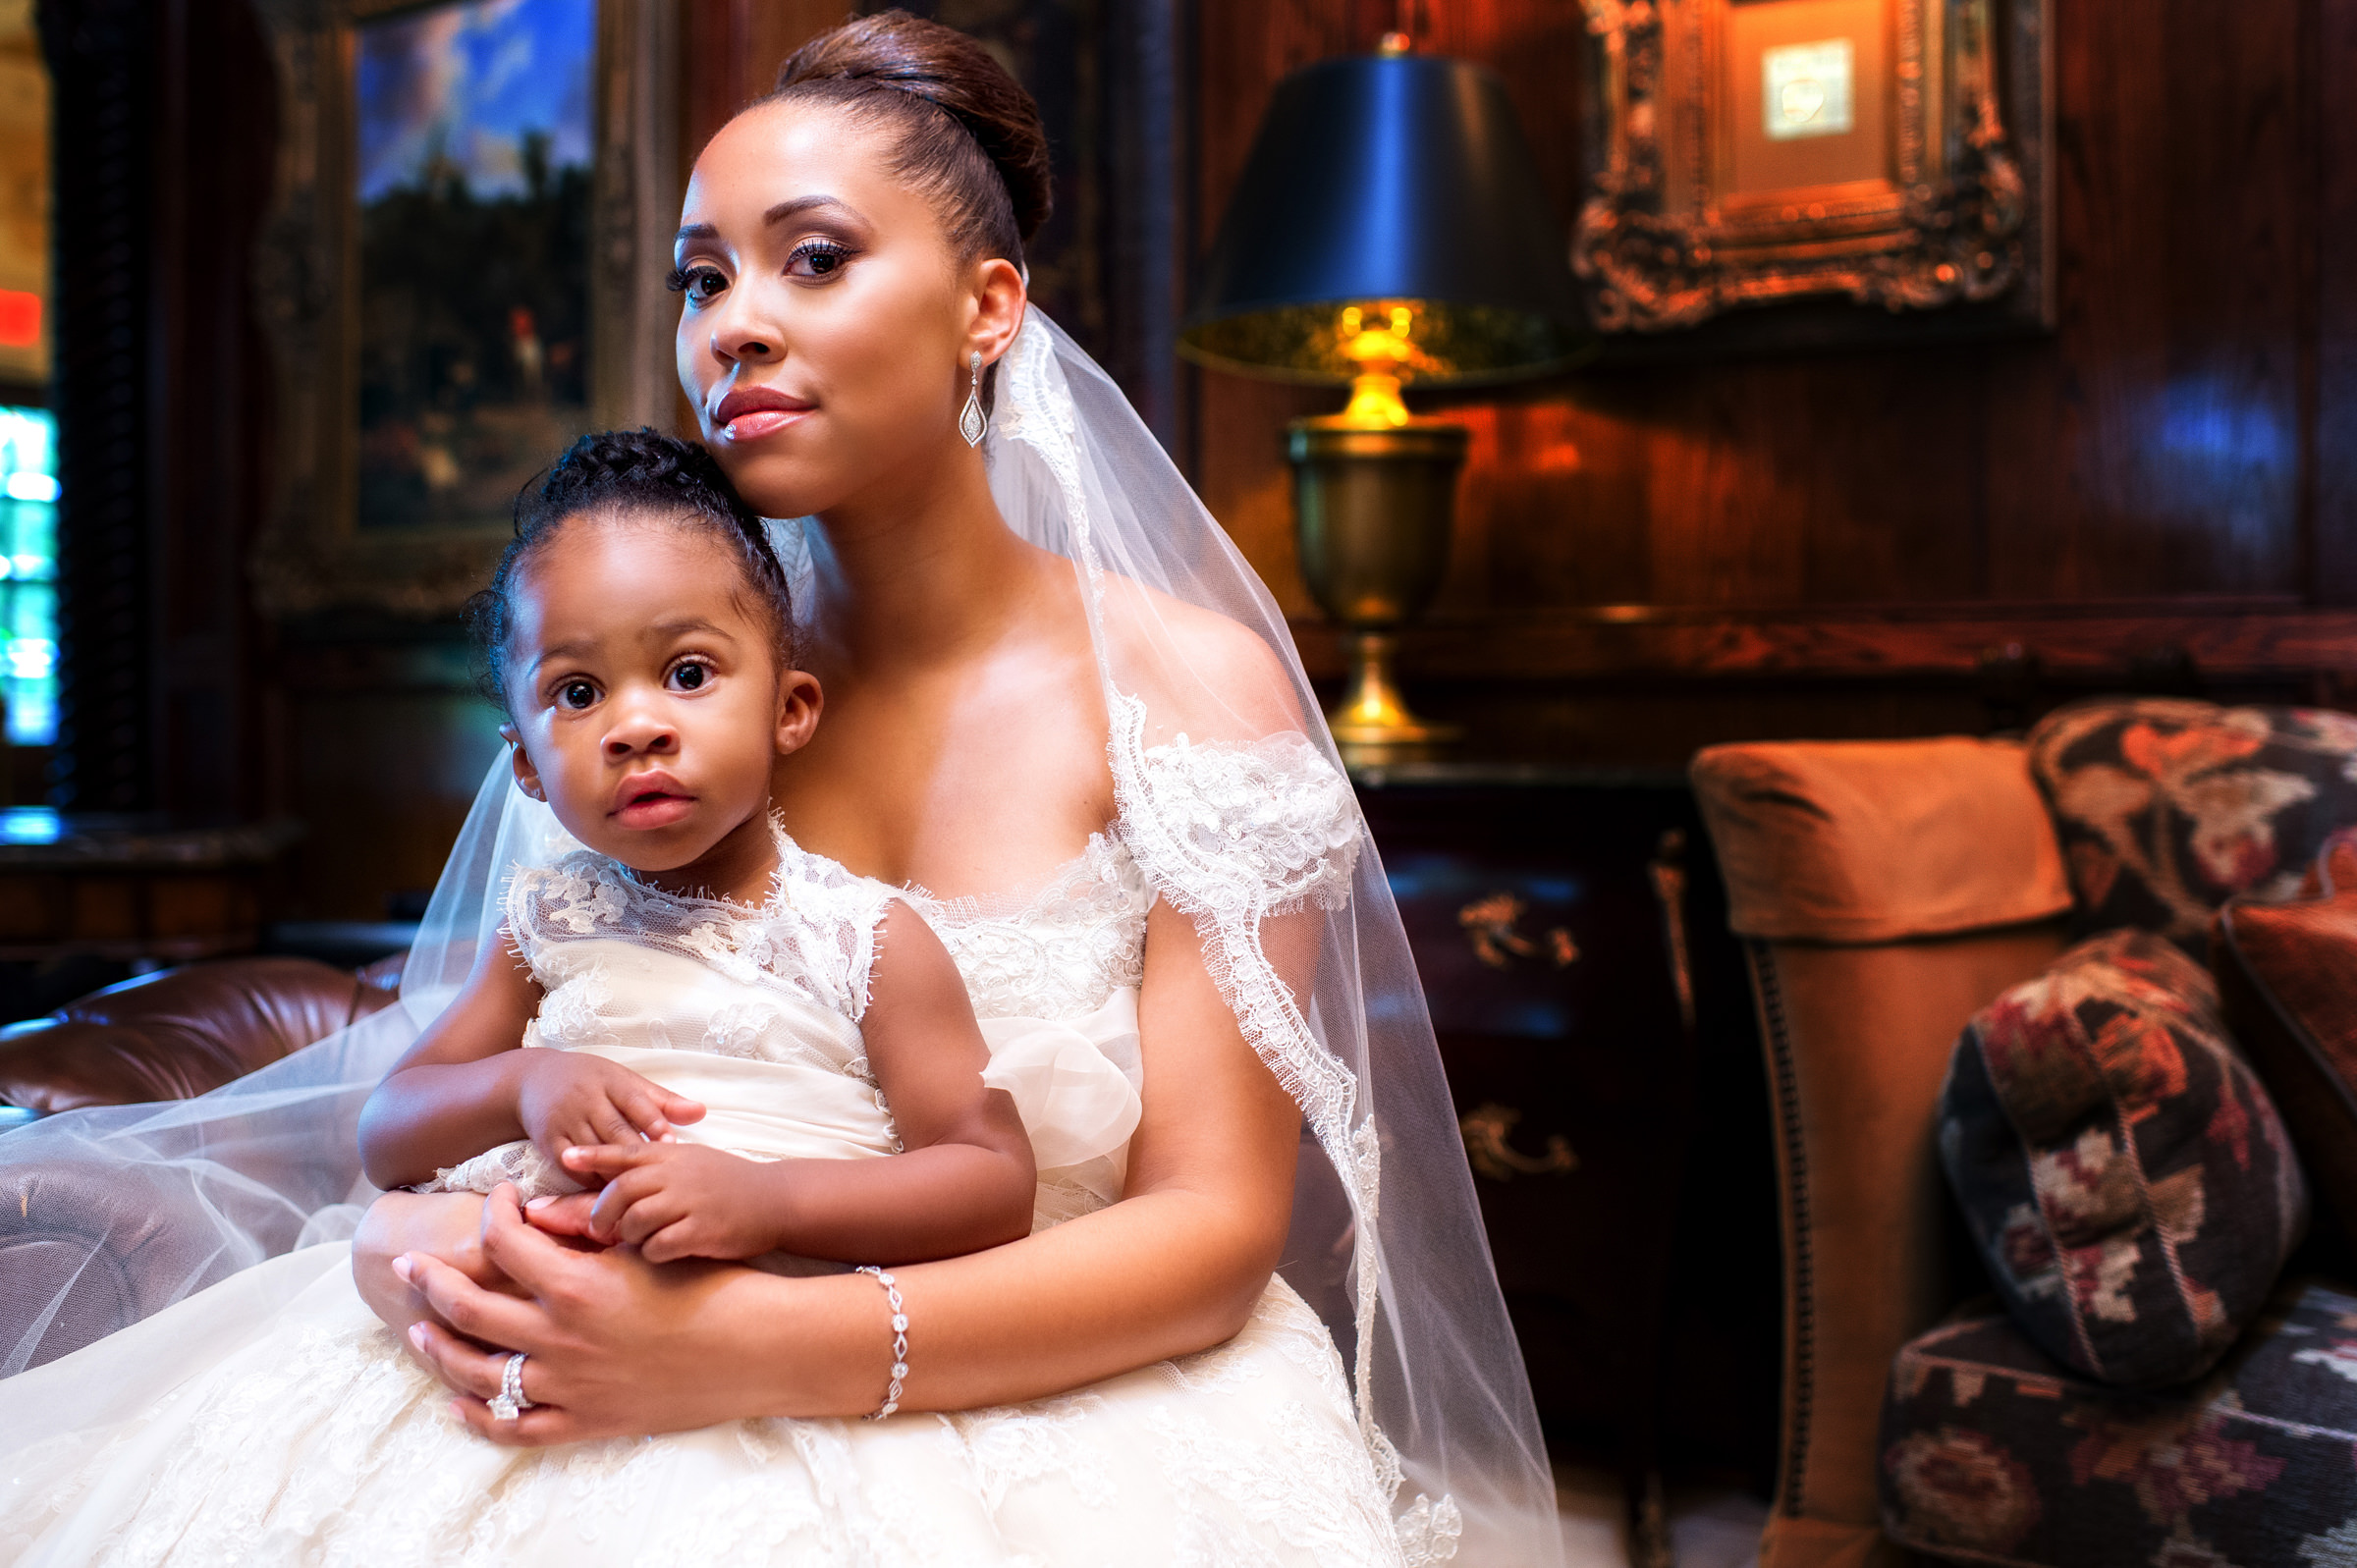 Bride with daughter on her lap wearing veil and lace gown  - photo by Jeff Tisman Photography, New York